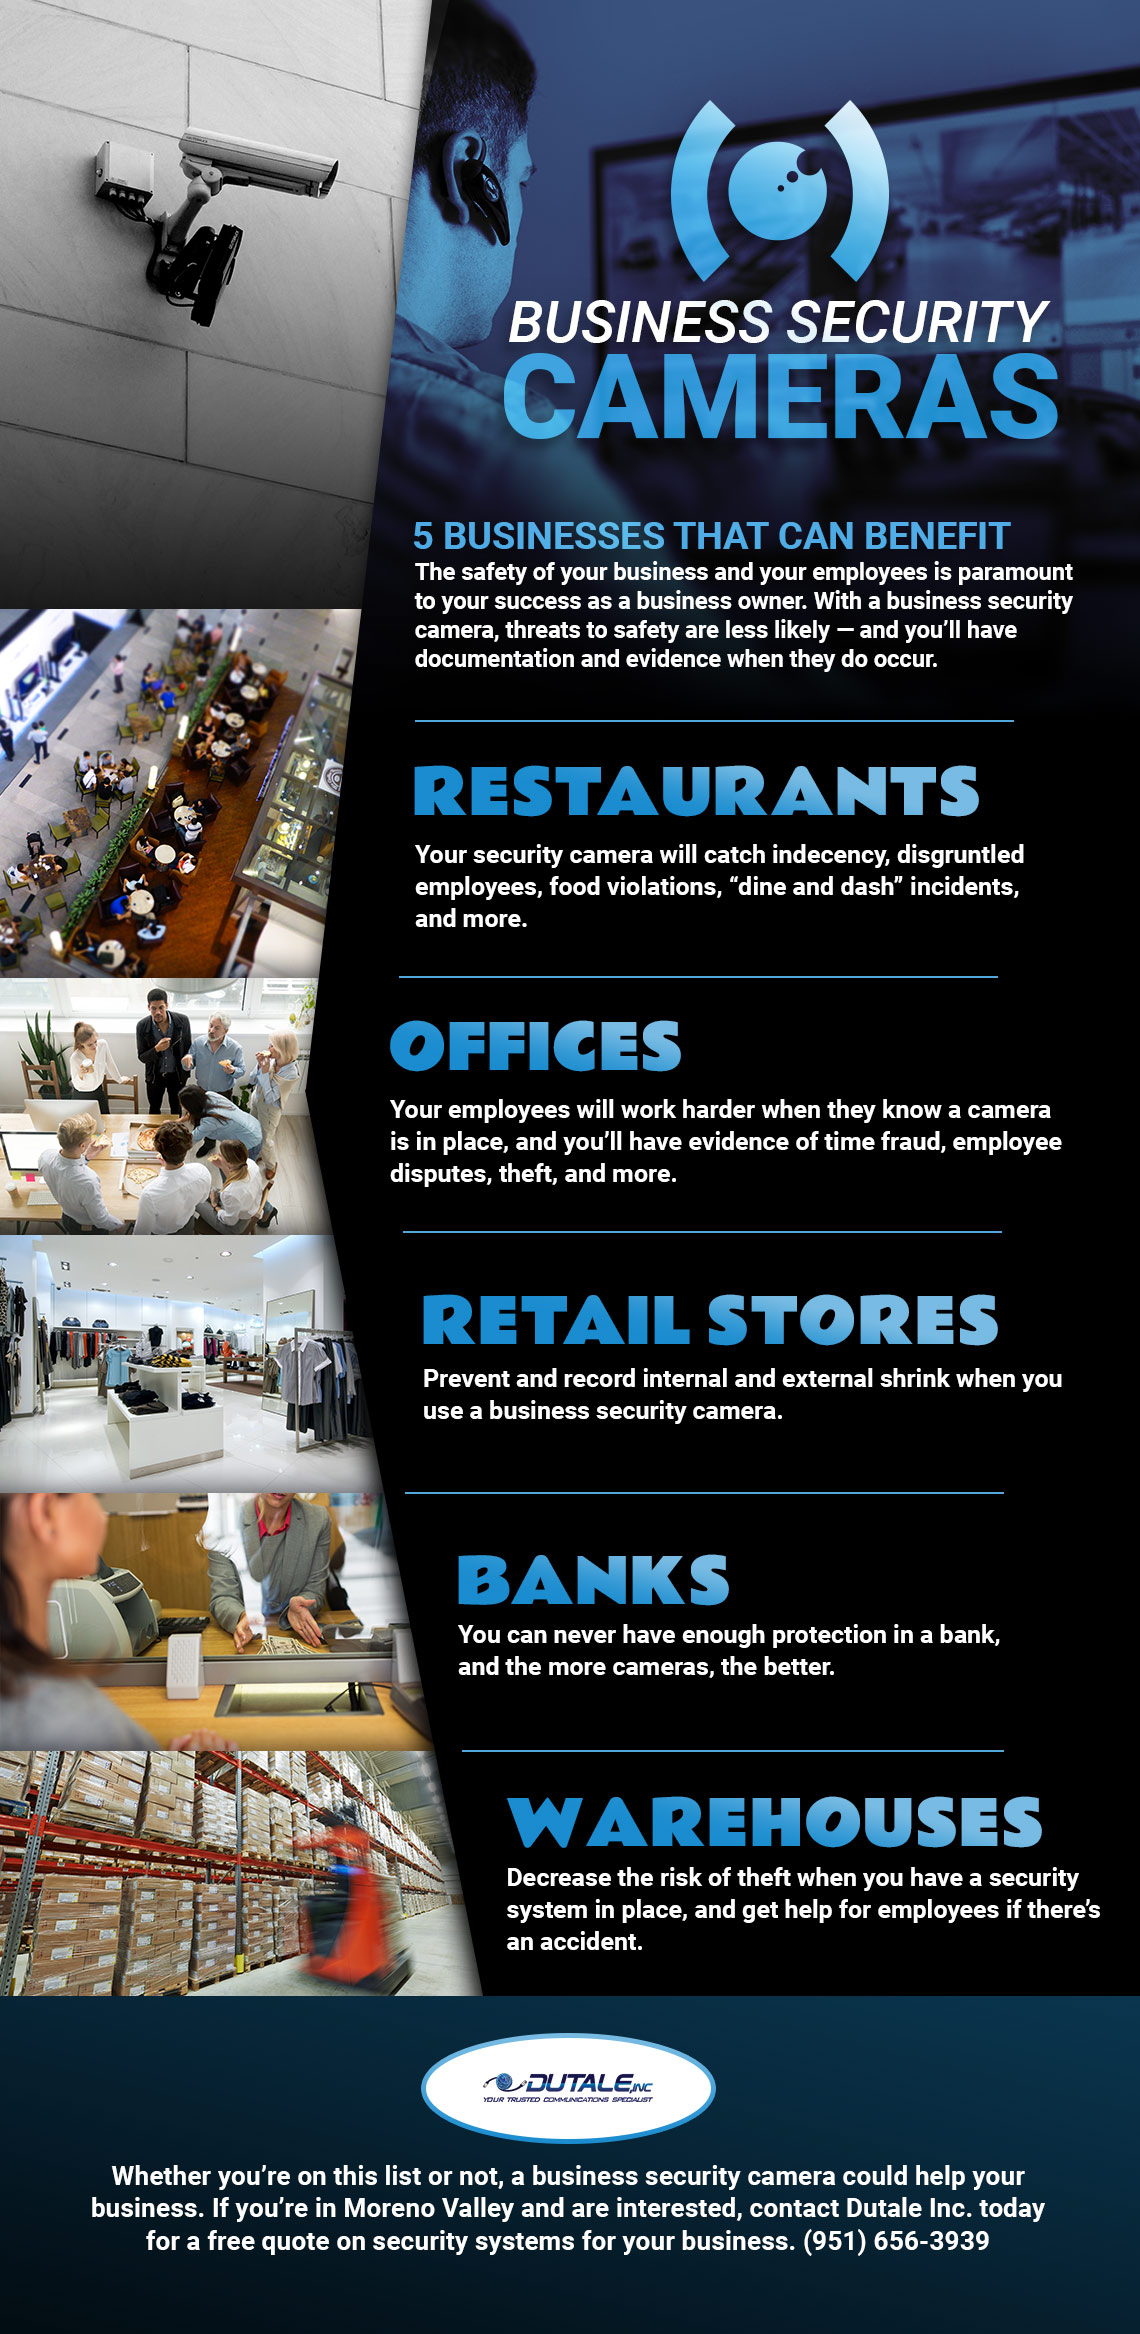 Business Security Moreno Valley: 5 Businesses That Benefit